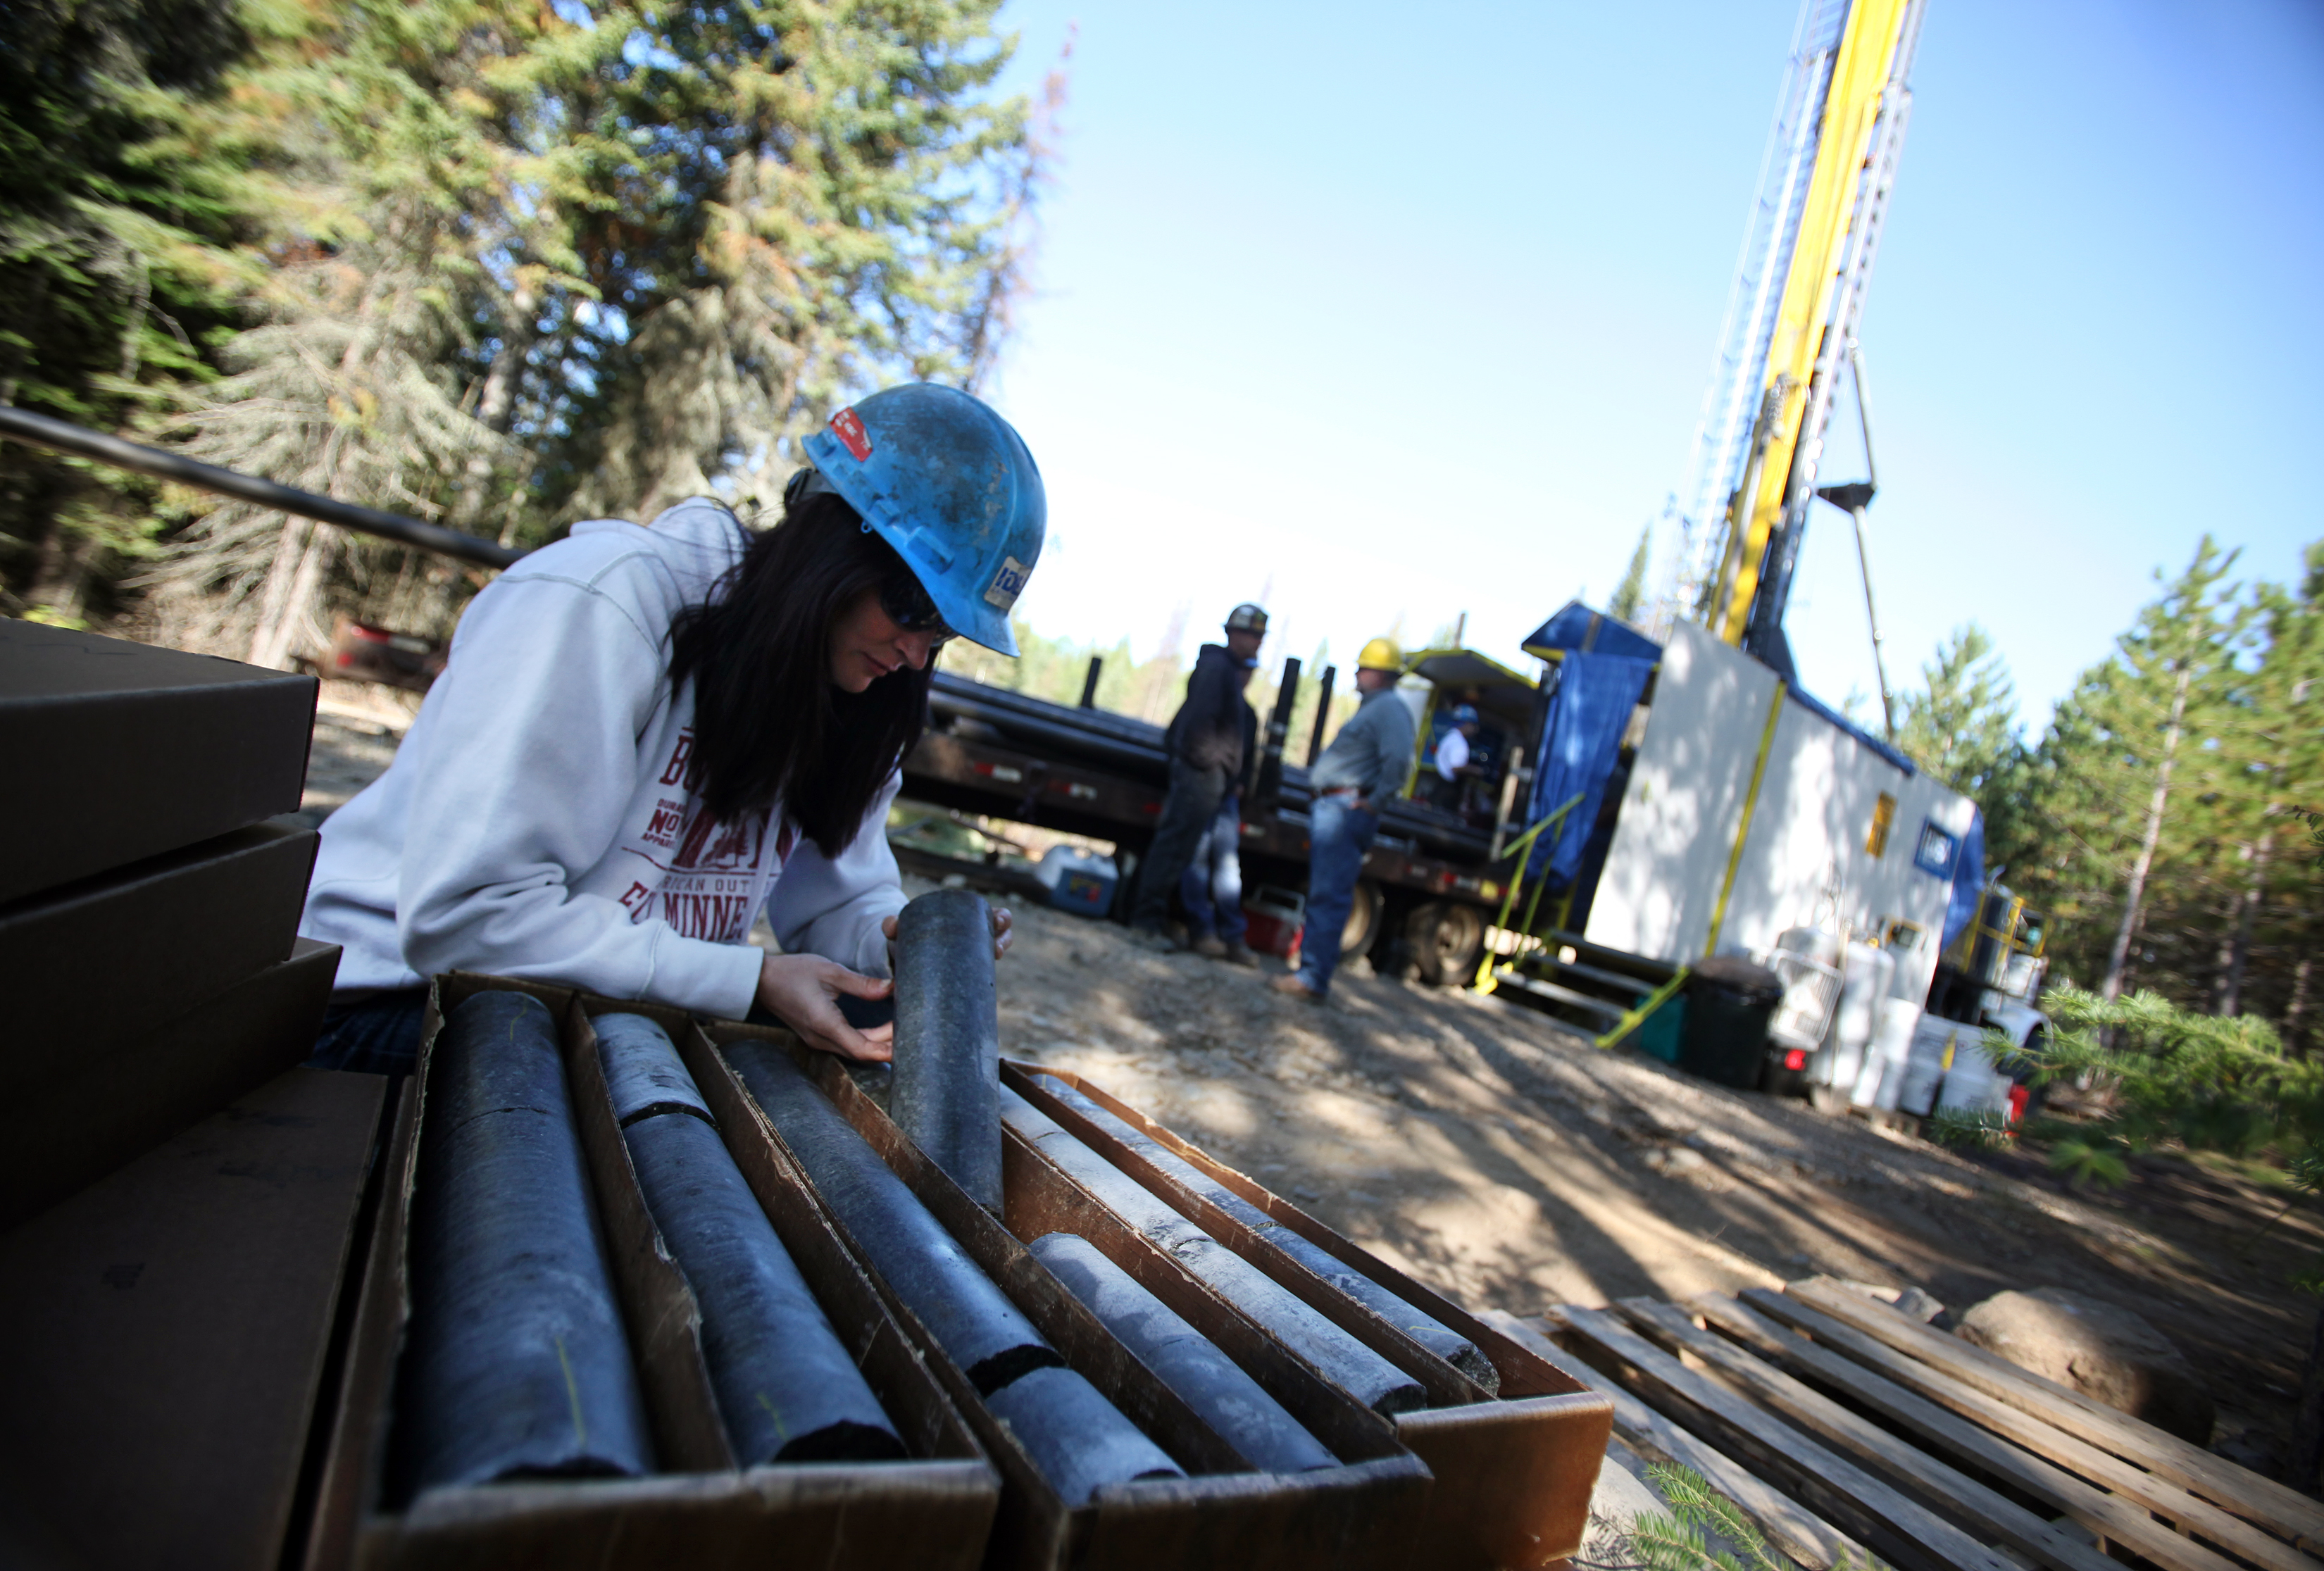 Geologist Gina Raymond looked at the metal content of freshly drilled core at a drilling site near Ely, Minn. in 2011.